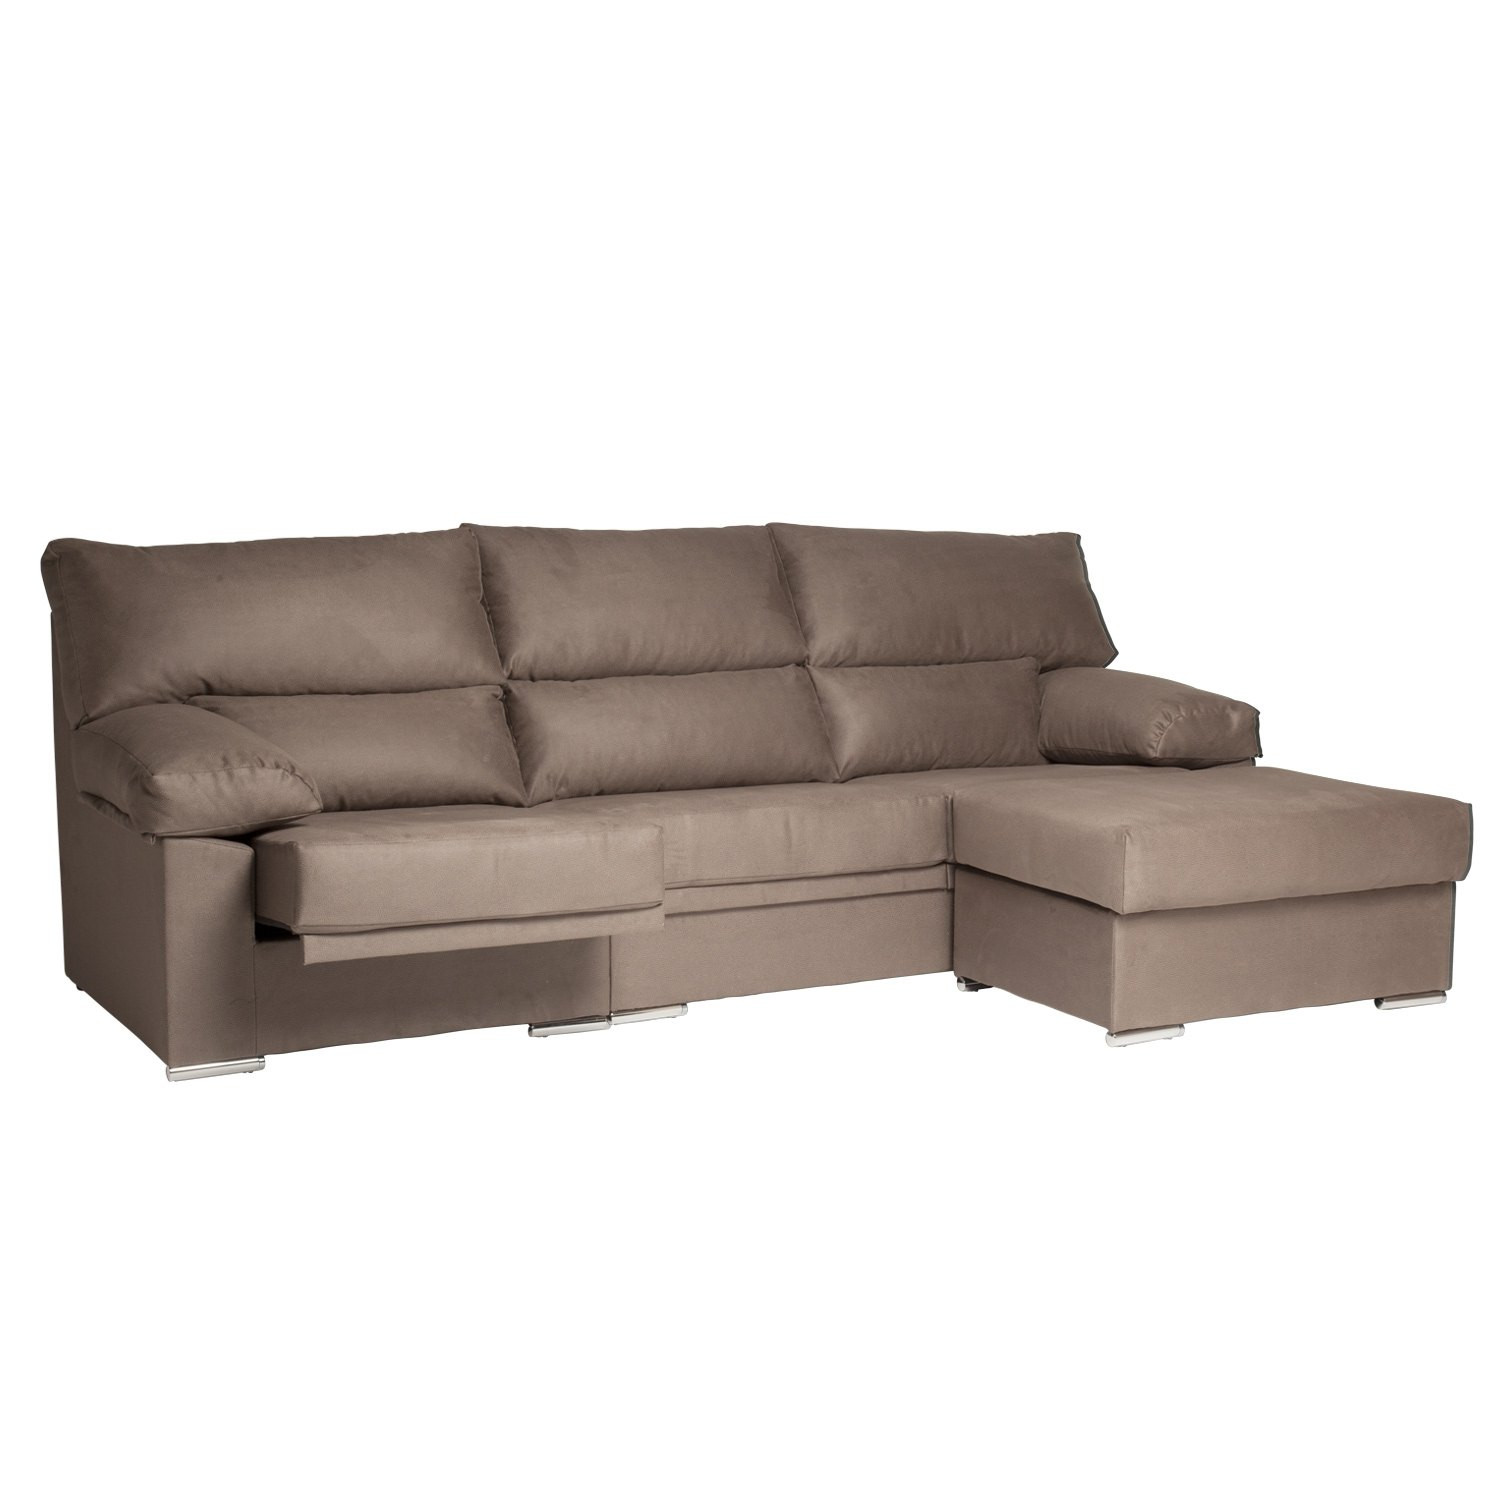 Sofa 3 Plazas Chaise Longue Perfecto sofá 3 Y 2 Plazas Con Chaise Longue Arlés En Oferta Of 37  atractivo sofa 3 Plazas Chaise Longue